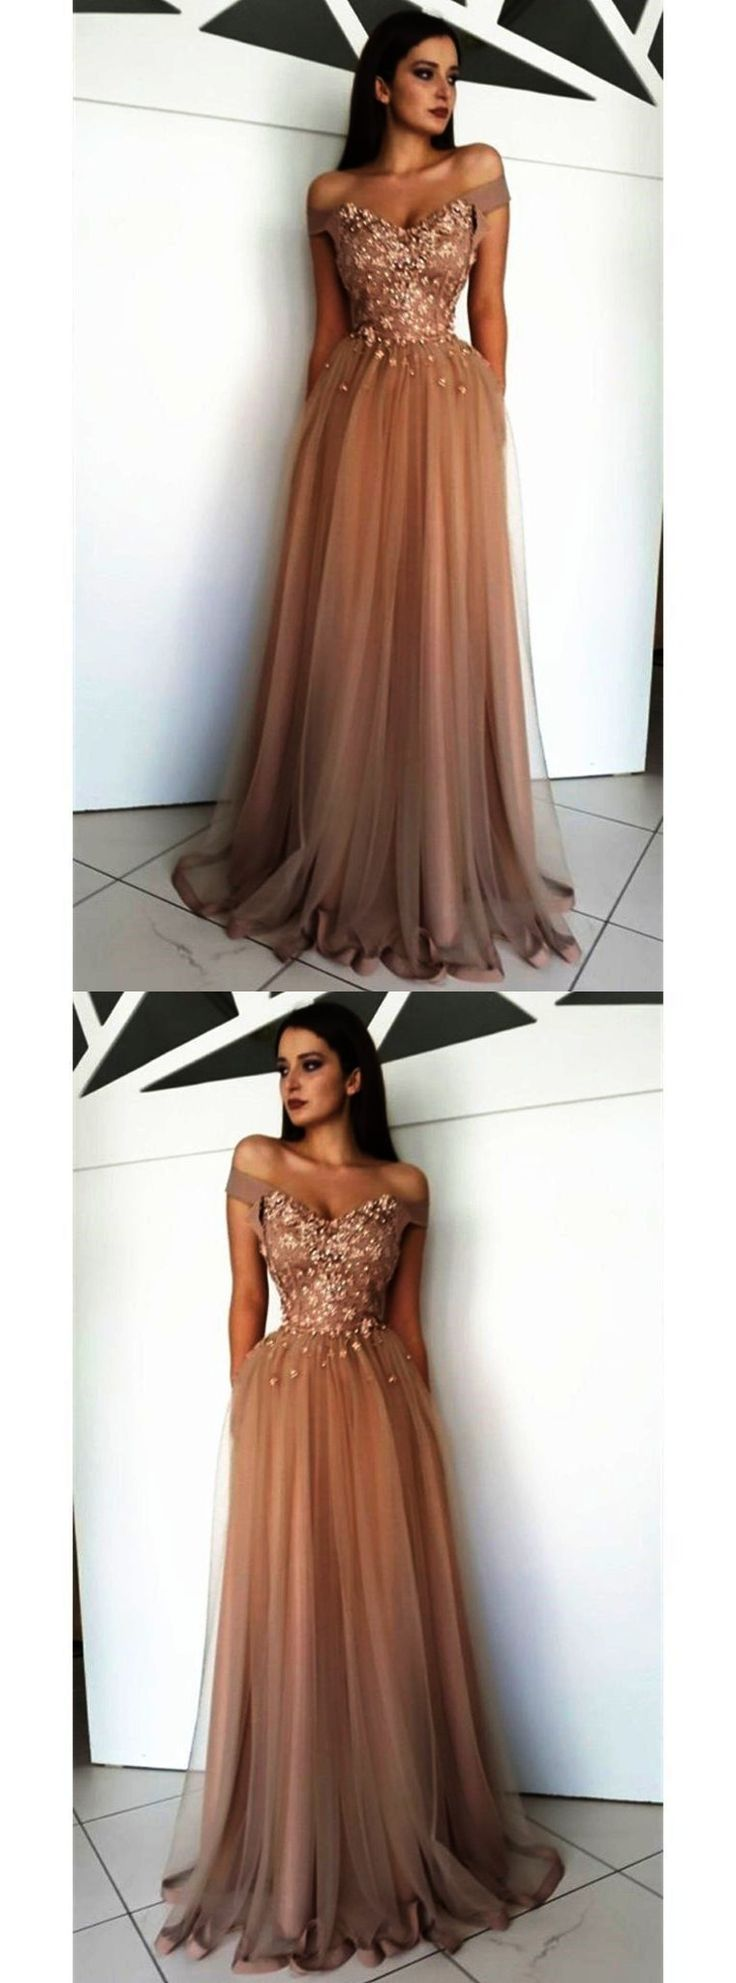 Prom Dresses Short And Tight after Prom Dresses 2019 Sherri Hill #promdresses